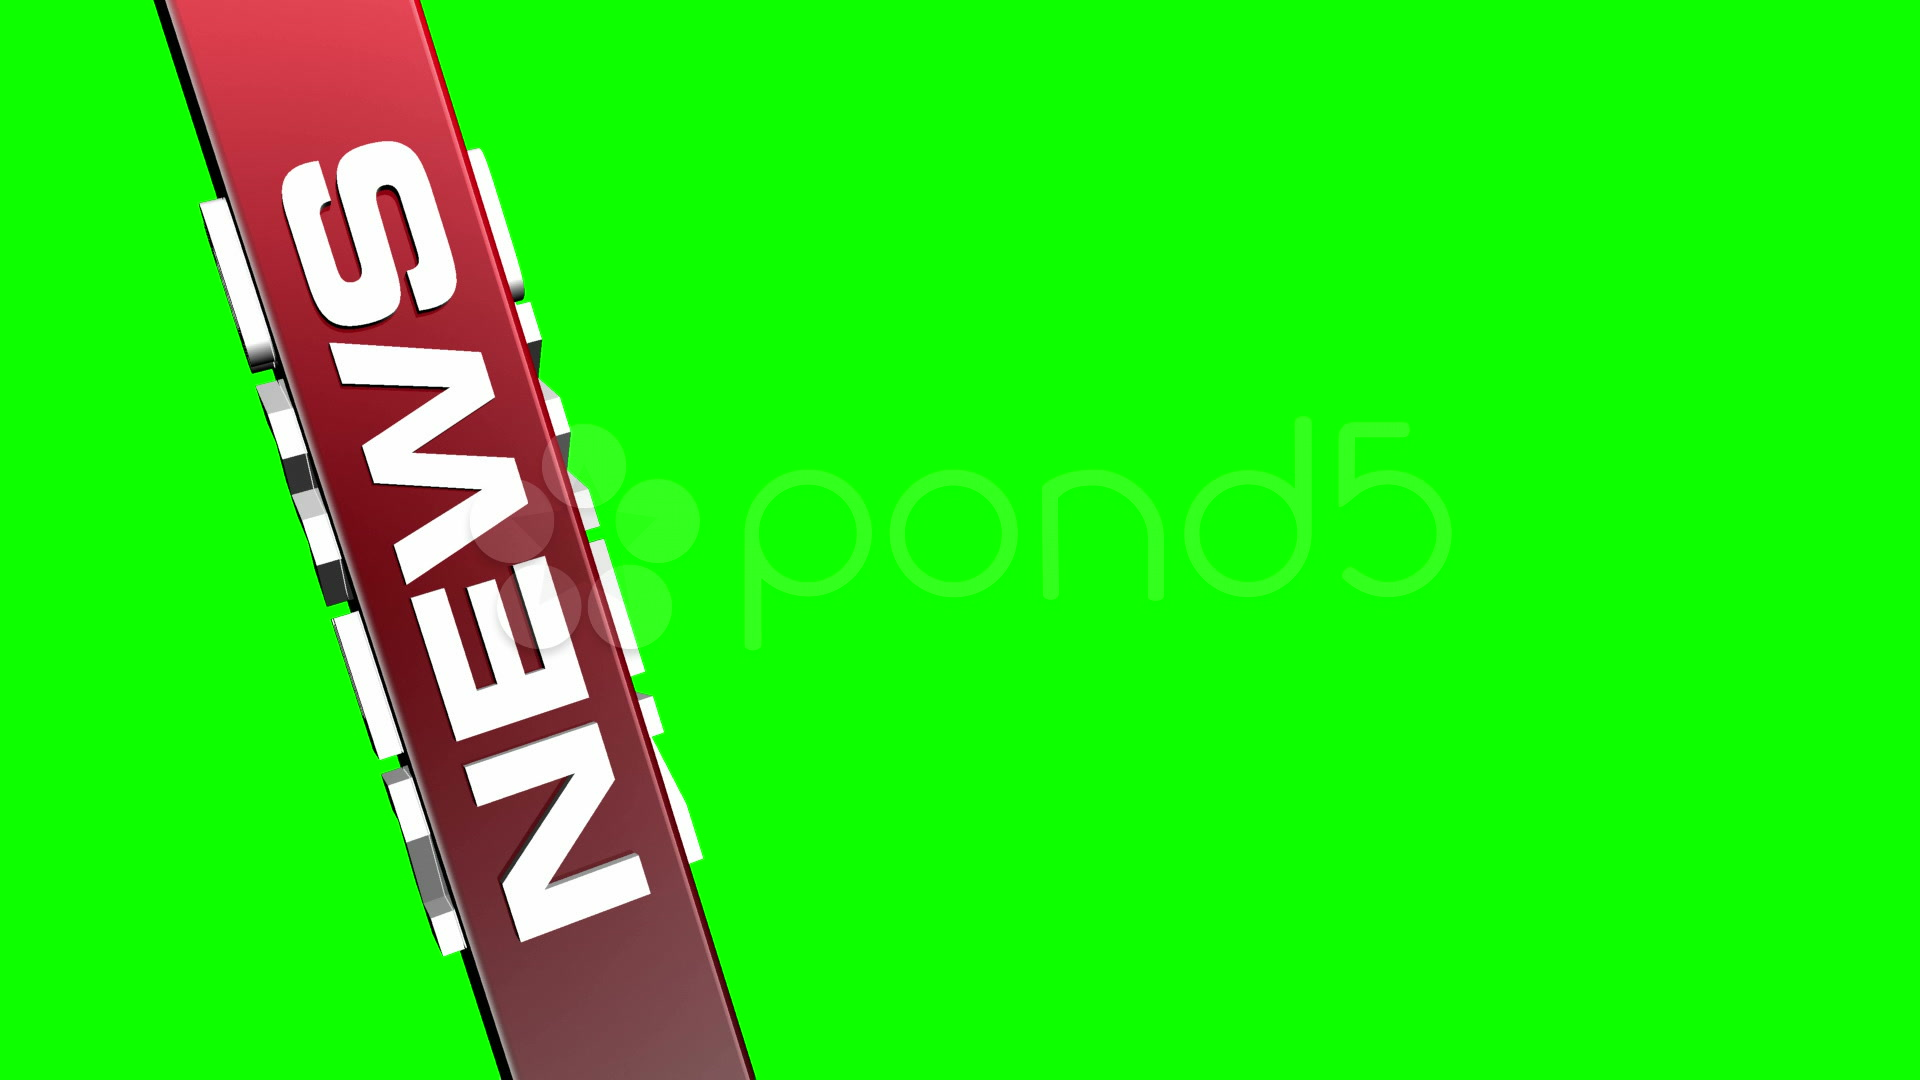 News redbox background green screen Left Hi Res 7768391 1920x1080